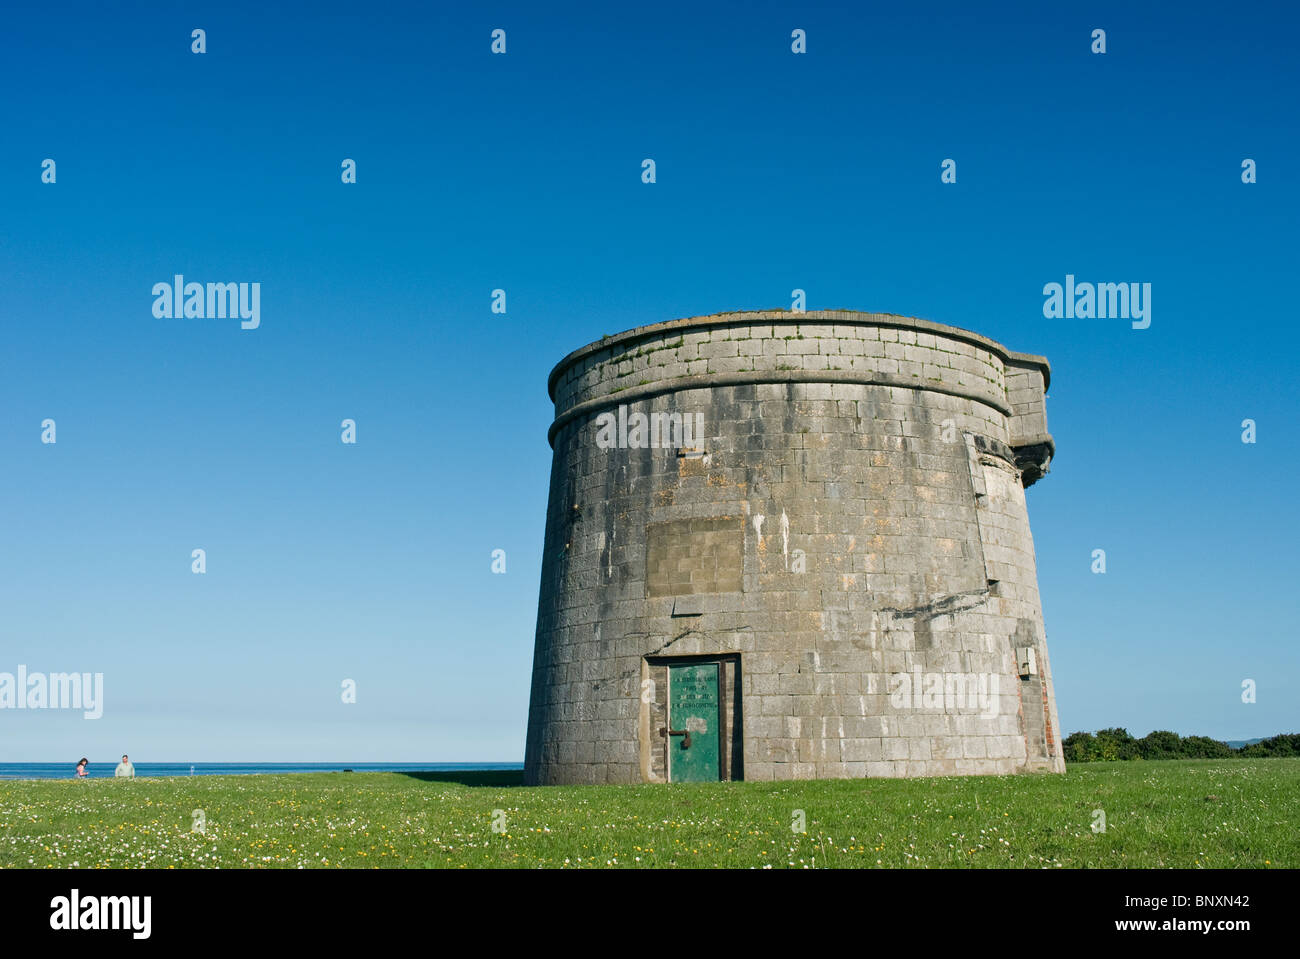 The Napoleonic era Martello defensive tower on Red Island at the seaside town of Skerries, north county Dublin, - Stock Image